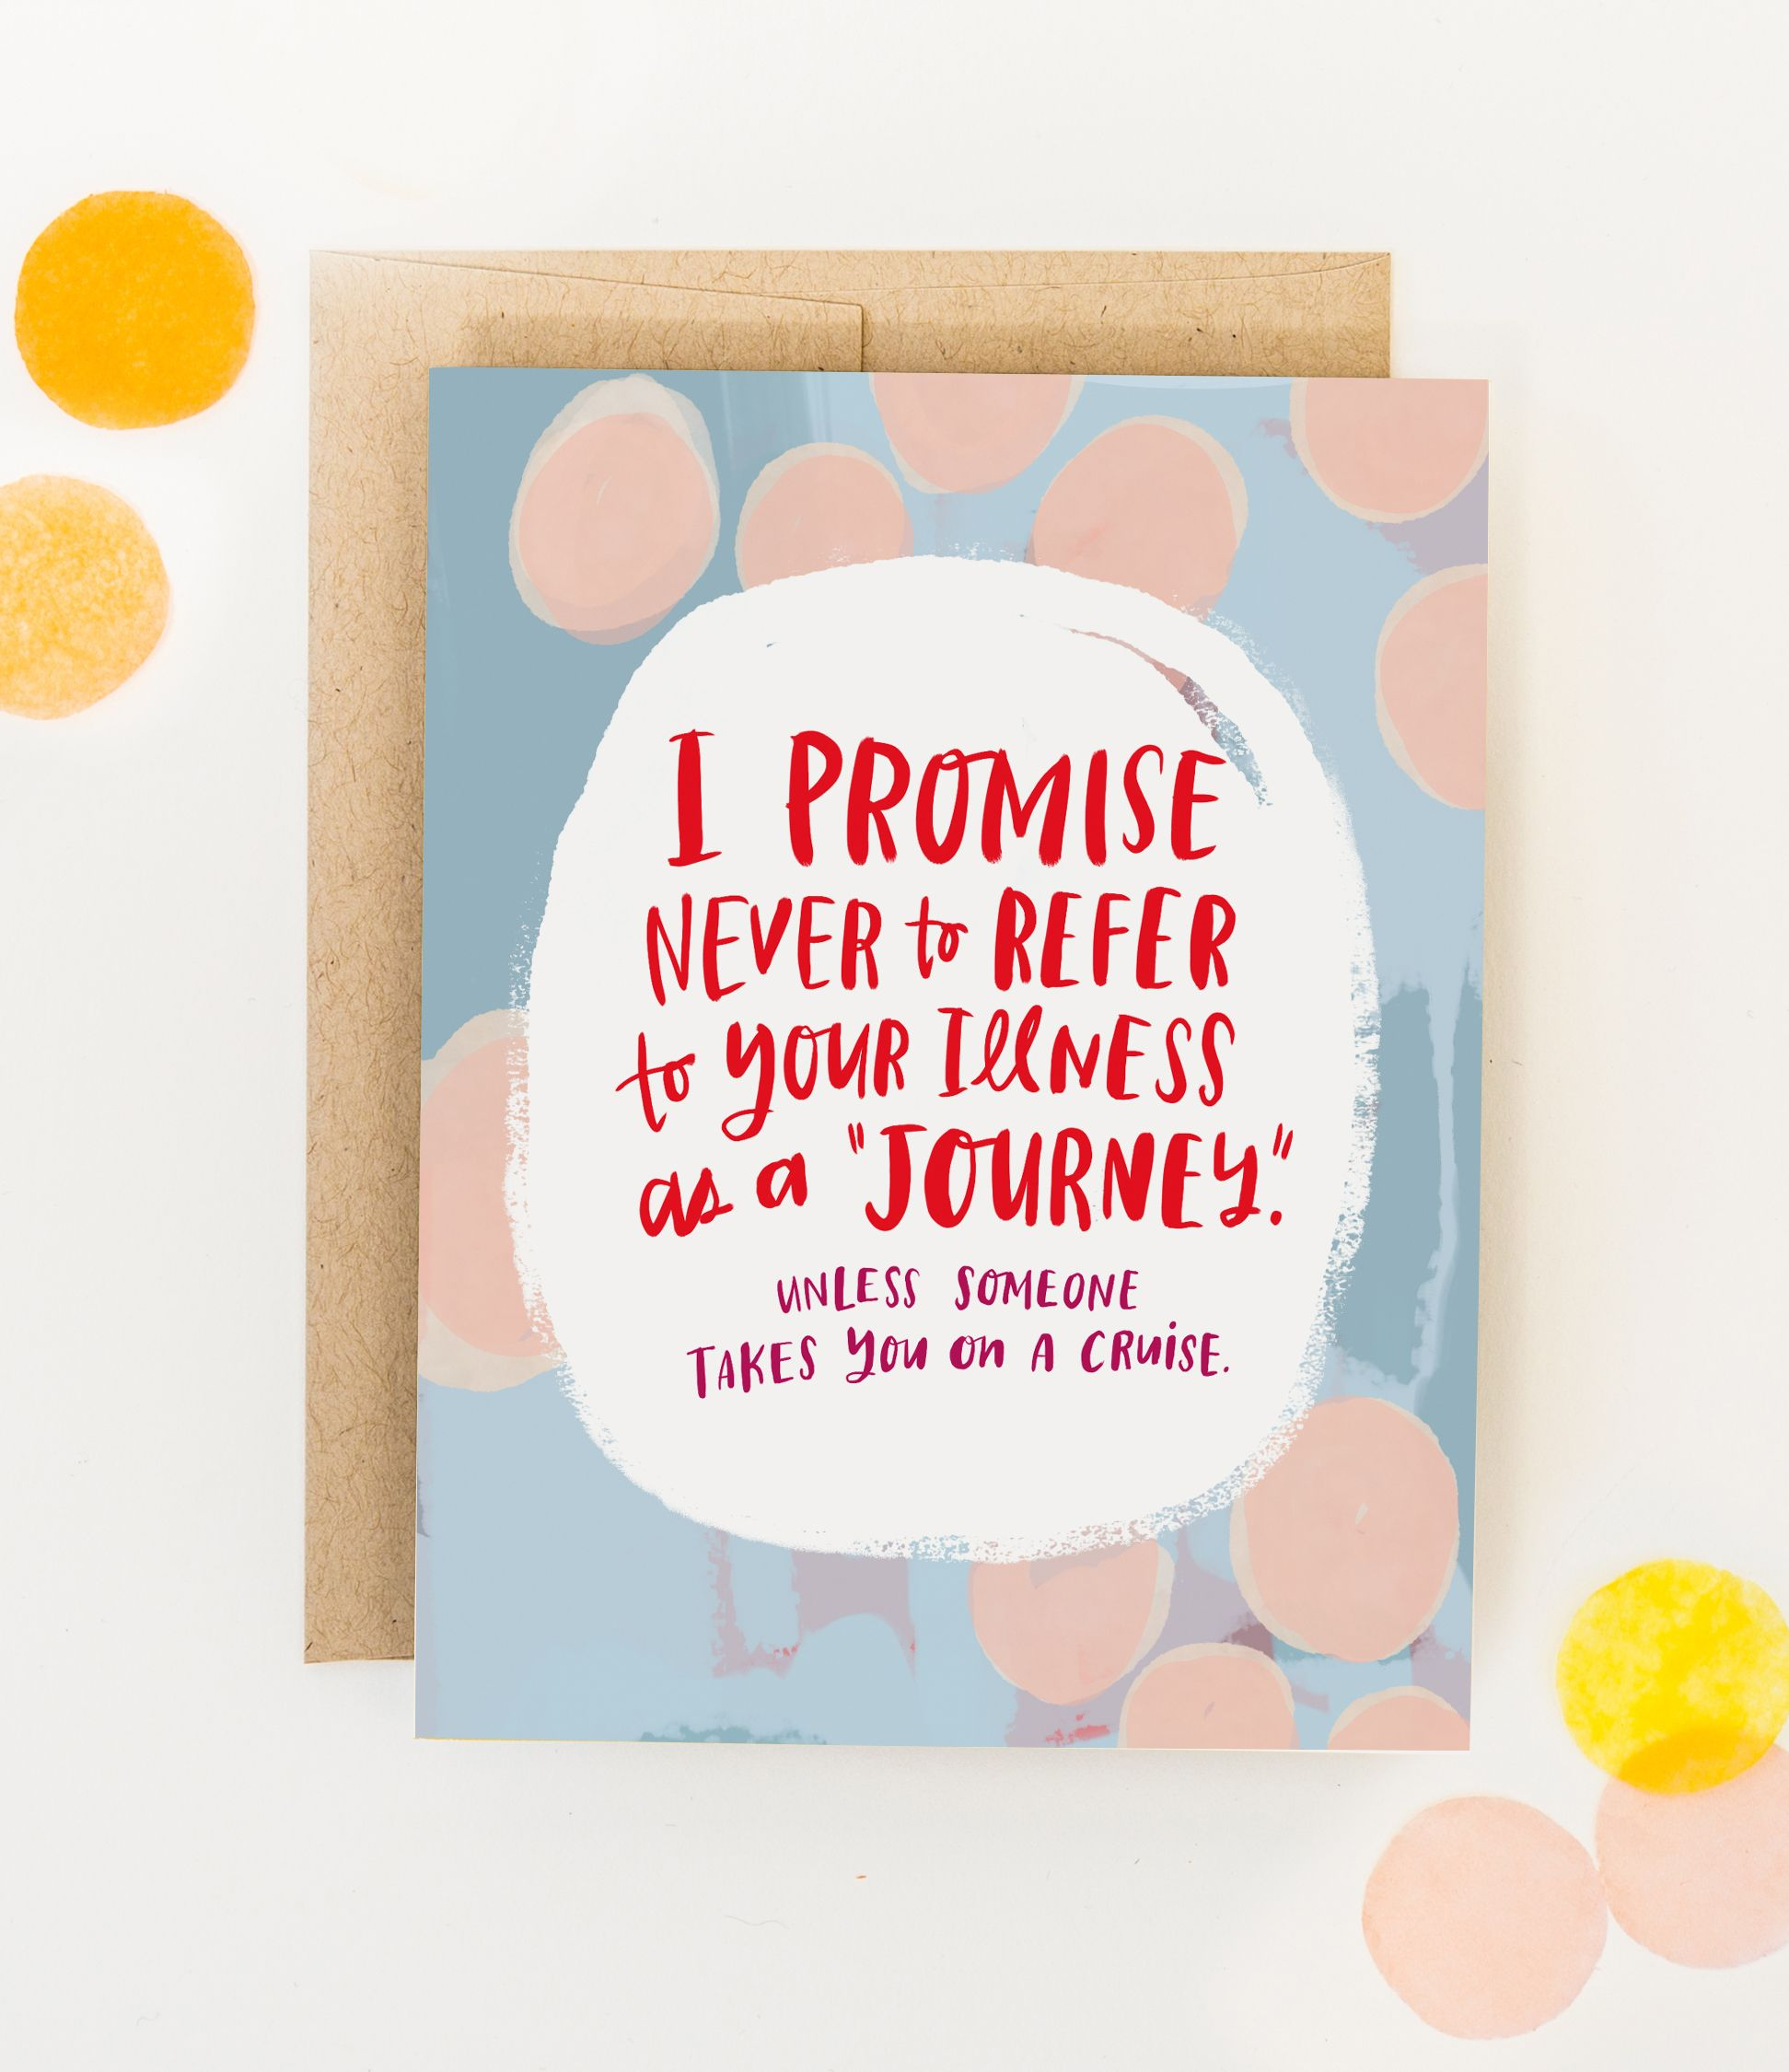 ILLNESS support love GET WELL CARD INSPIRATIONAL MESSAGE CARD BREAST CANCER